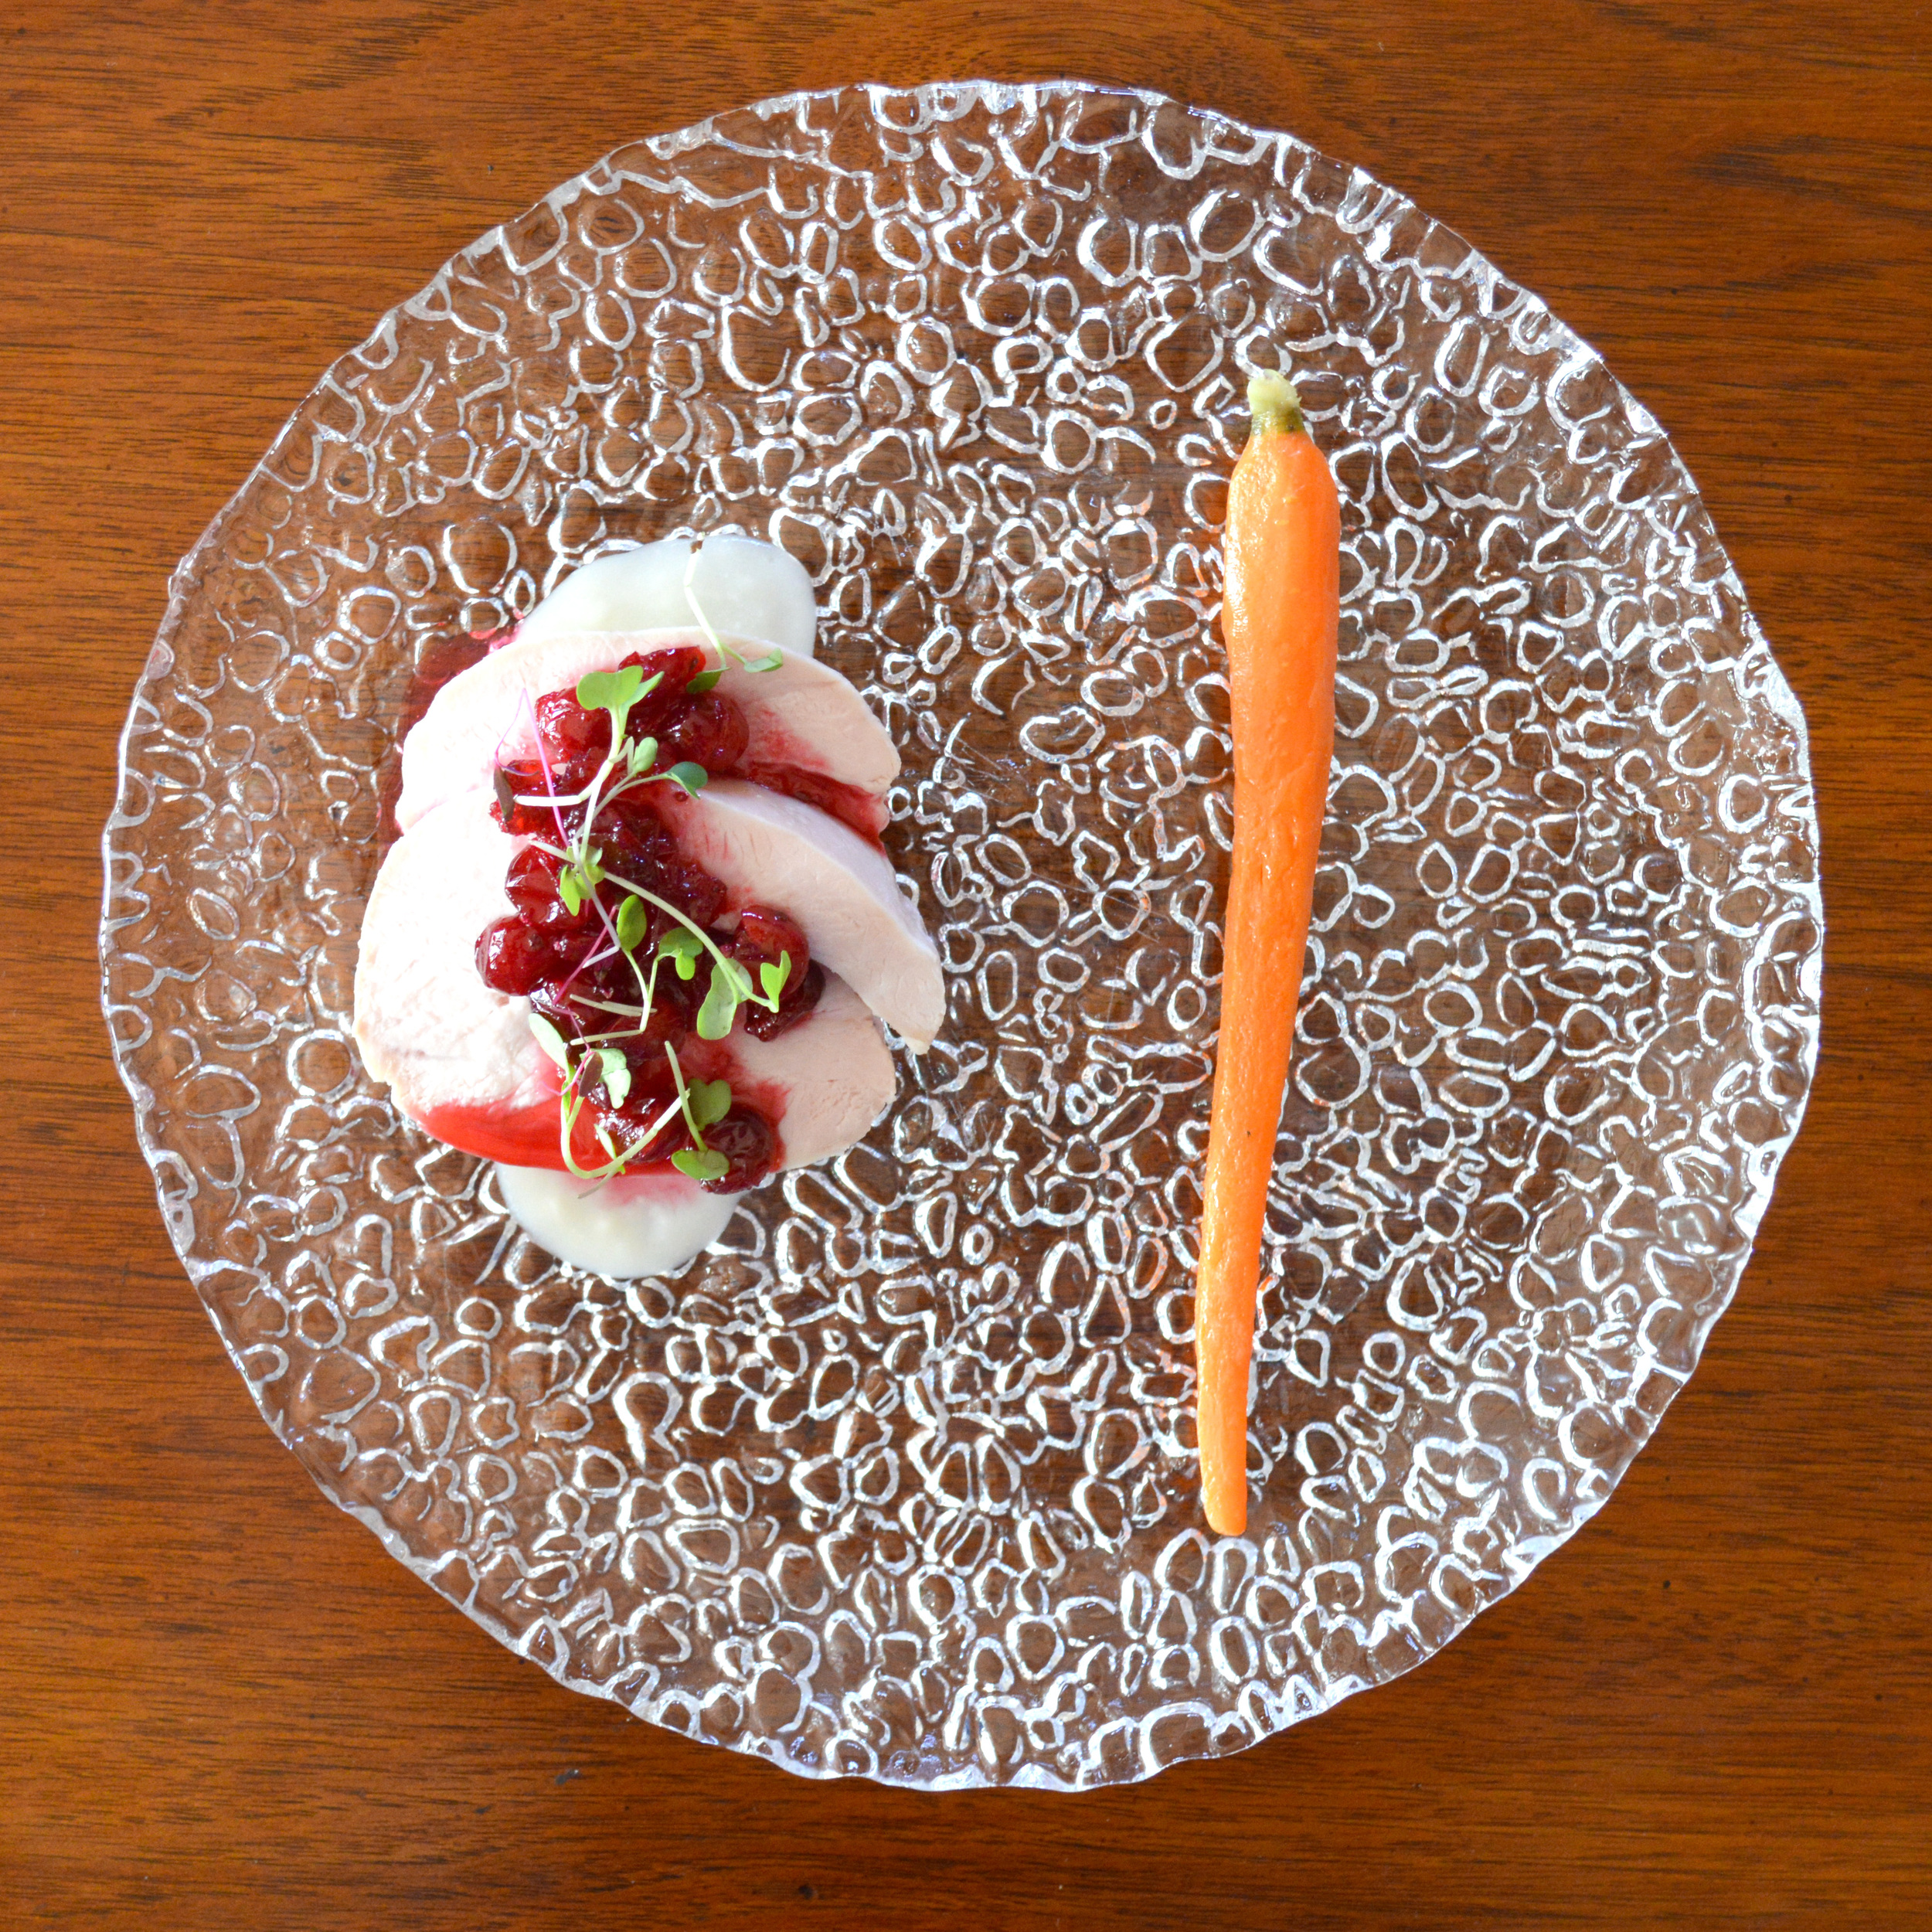 Sous-vide truffle turkey over gravy, under cranberry sauce and microgreens. Accompanied by a carrot.